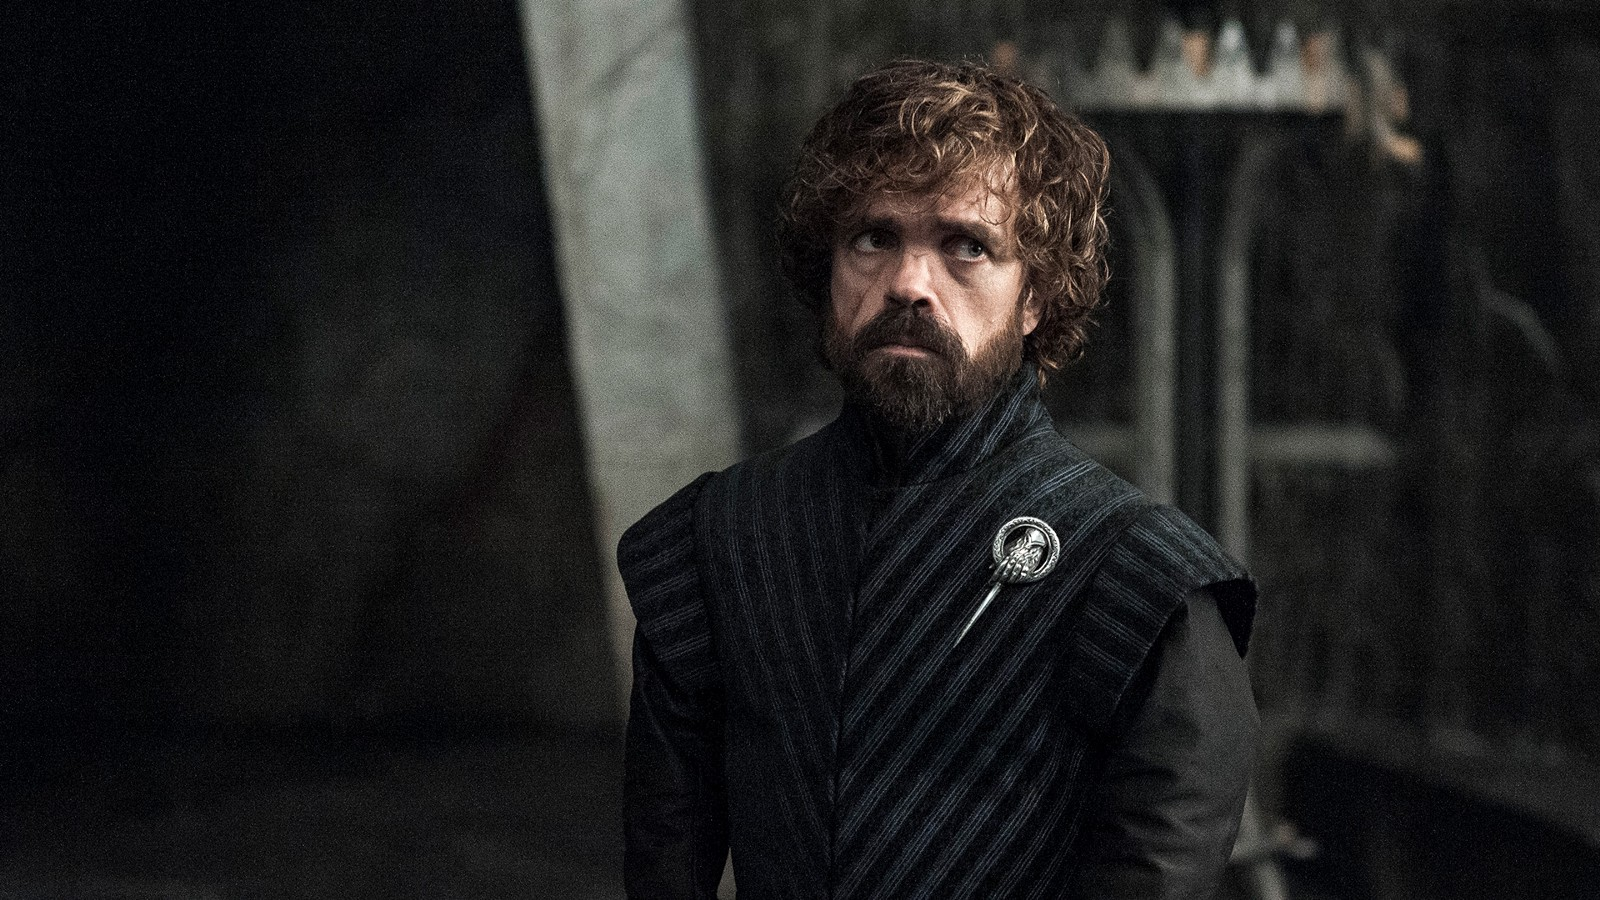 Lord Tyrion